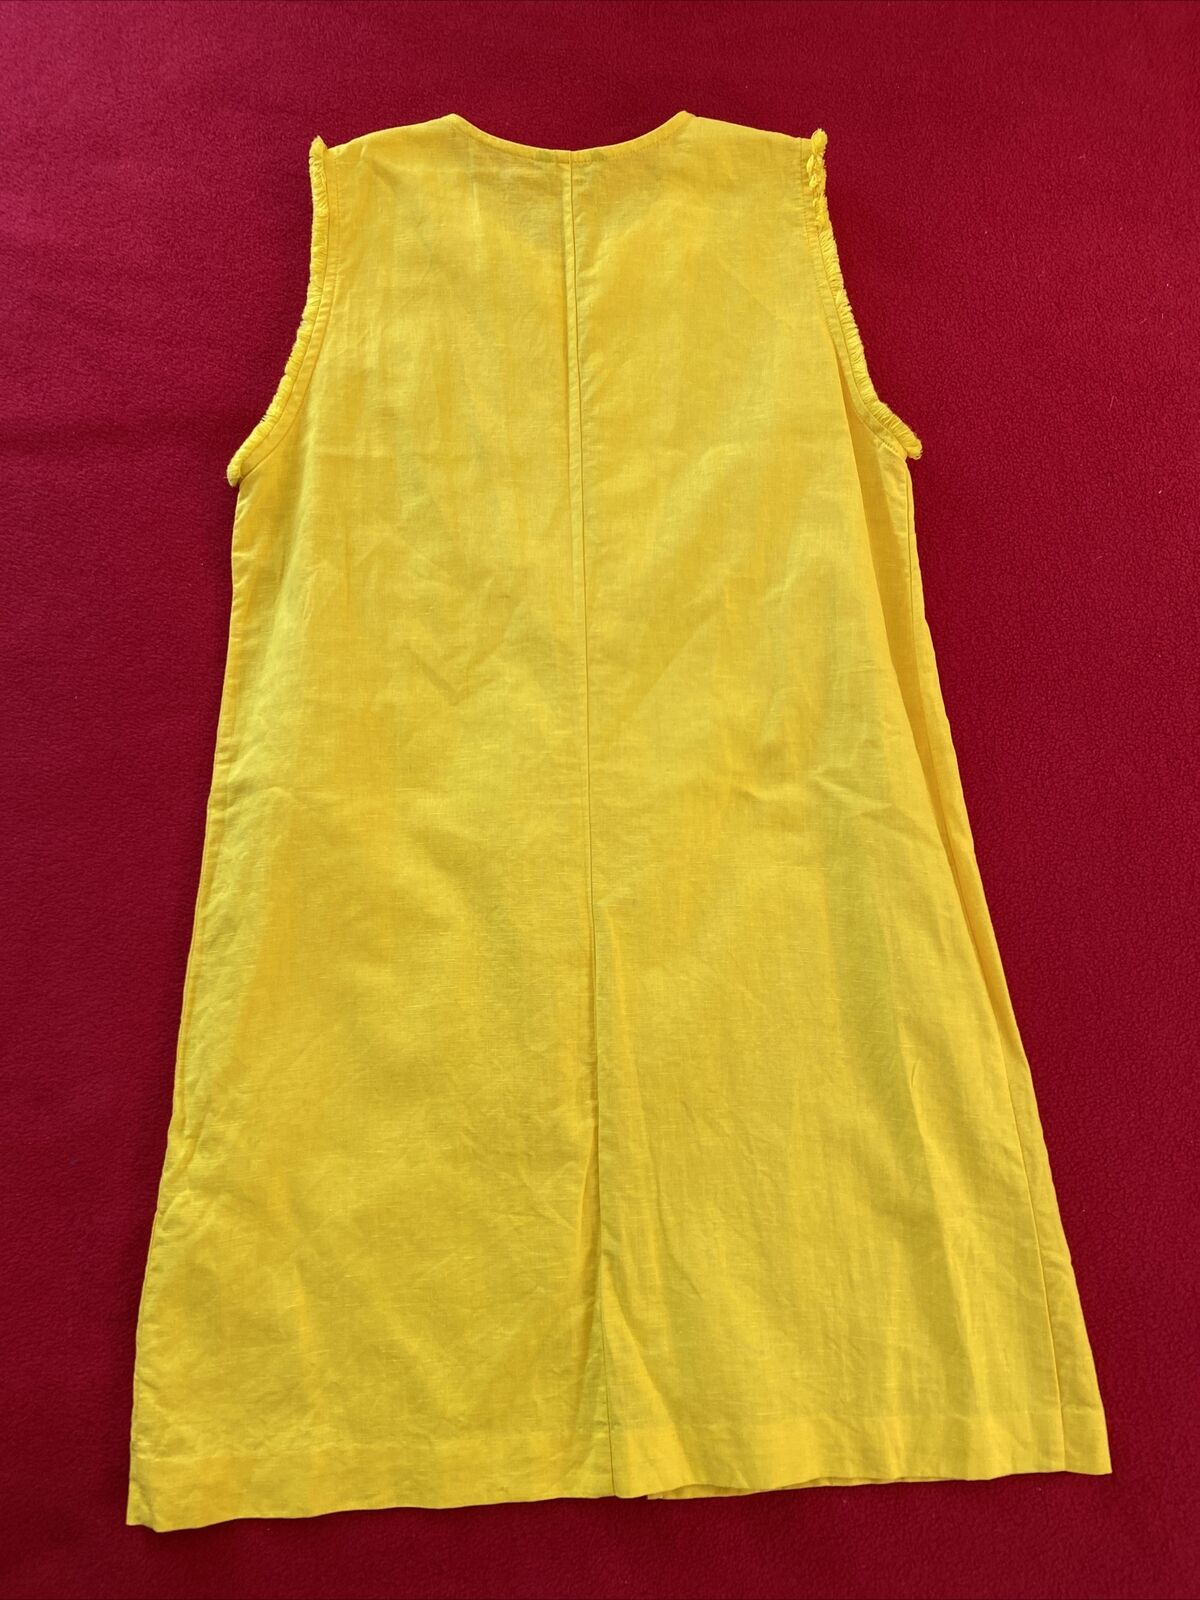 floryday bright yellow linen shift dress size med… - image 6